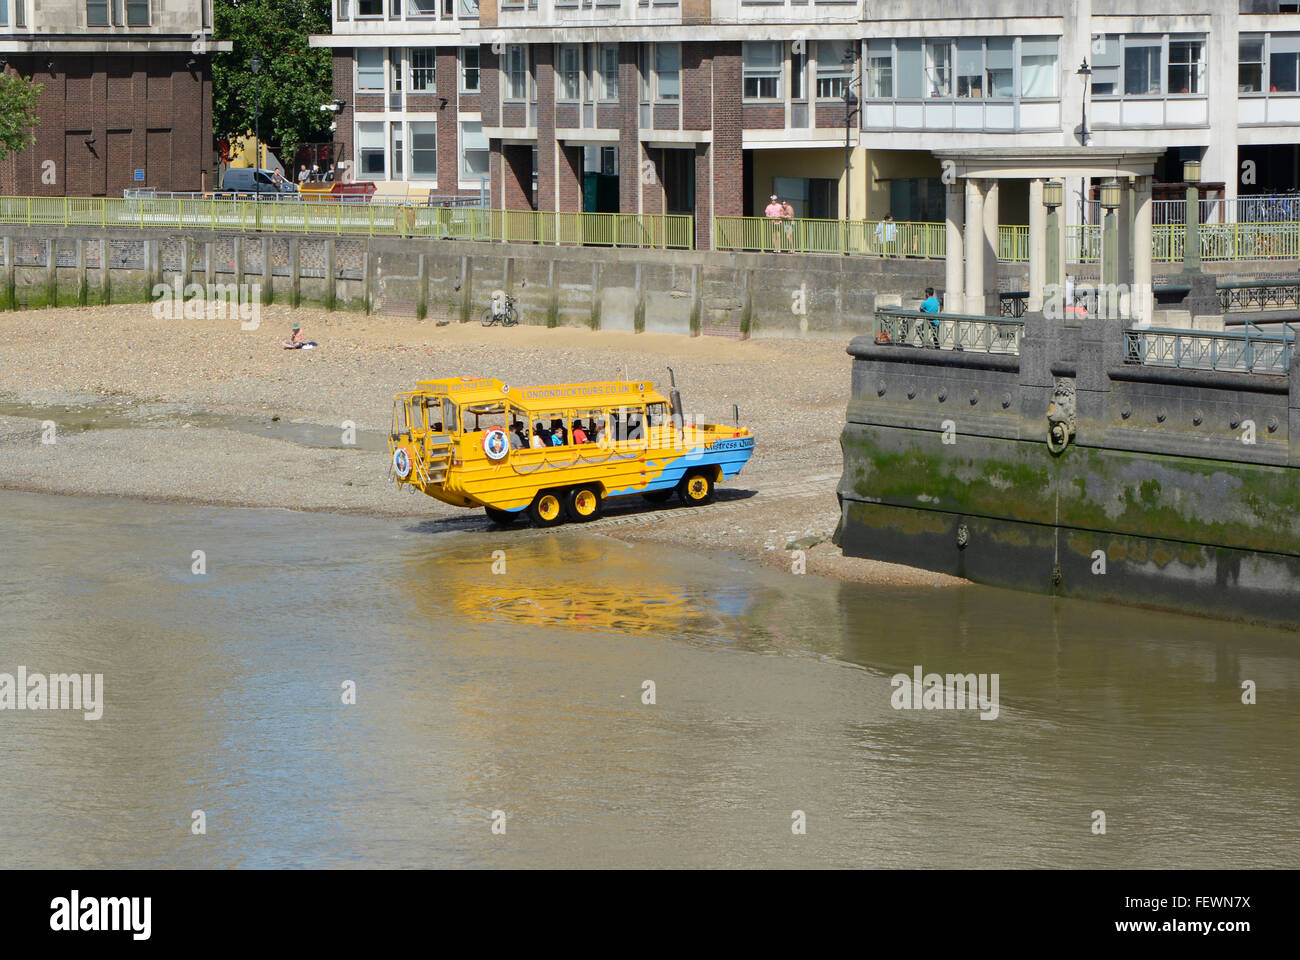 Duck Tours amphibious tourist bus leaving the River Thames on the South Bank in London, England - Stock Image